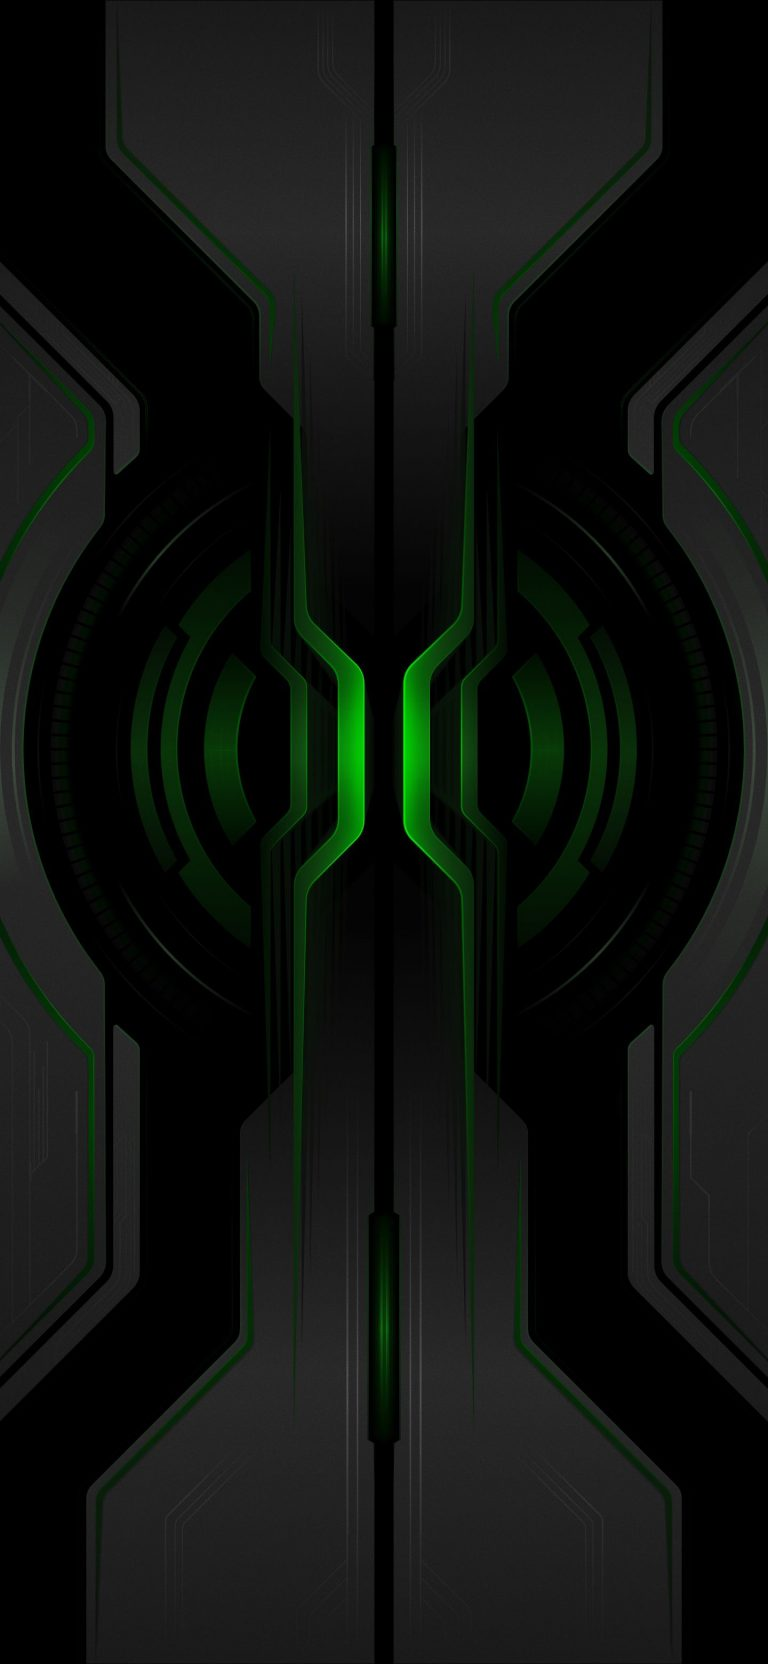 Xiaomi Black Shark 2 Pro Stock Wallpaper 05 1440x3120 768x1664